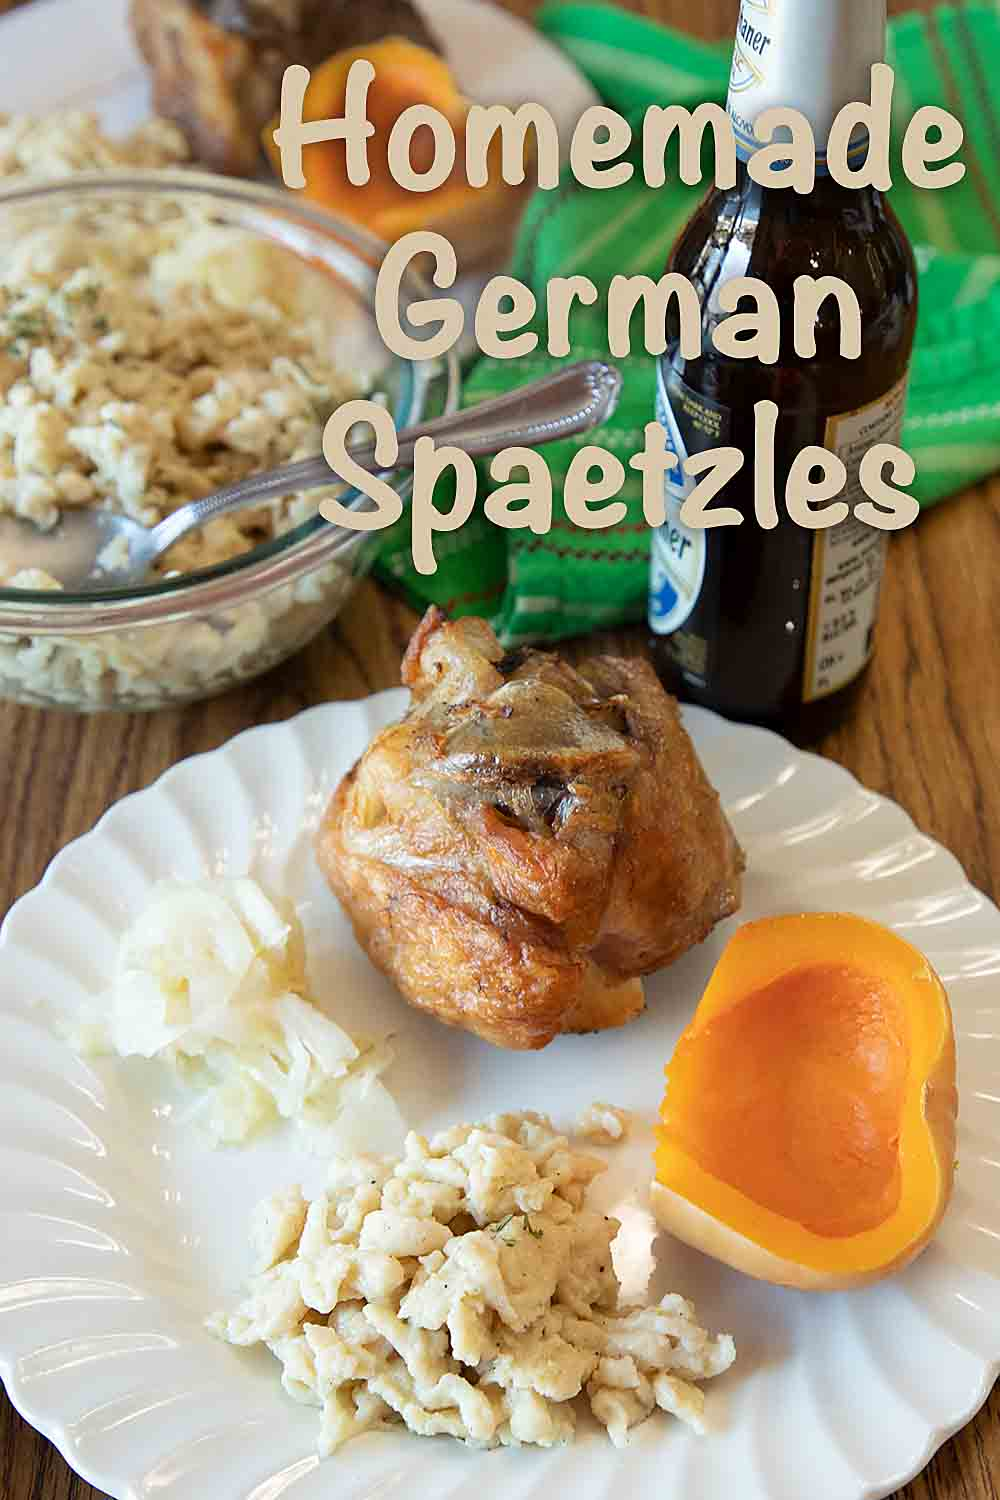 Like a cross between an egg noodle and a dumpling, homemade German Spaetzles are a tasty, easy and versatile side dish.